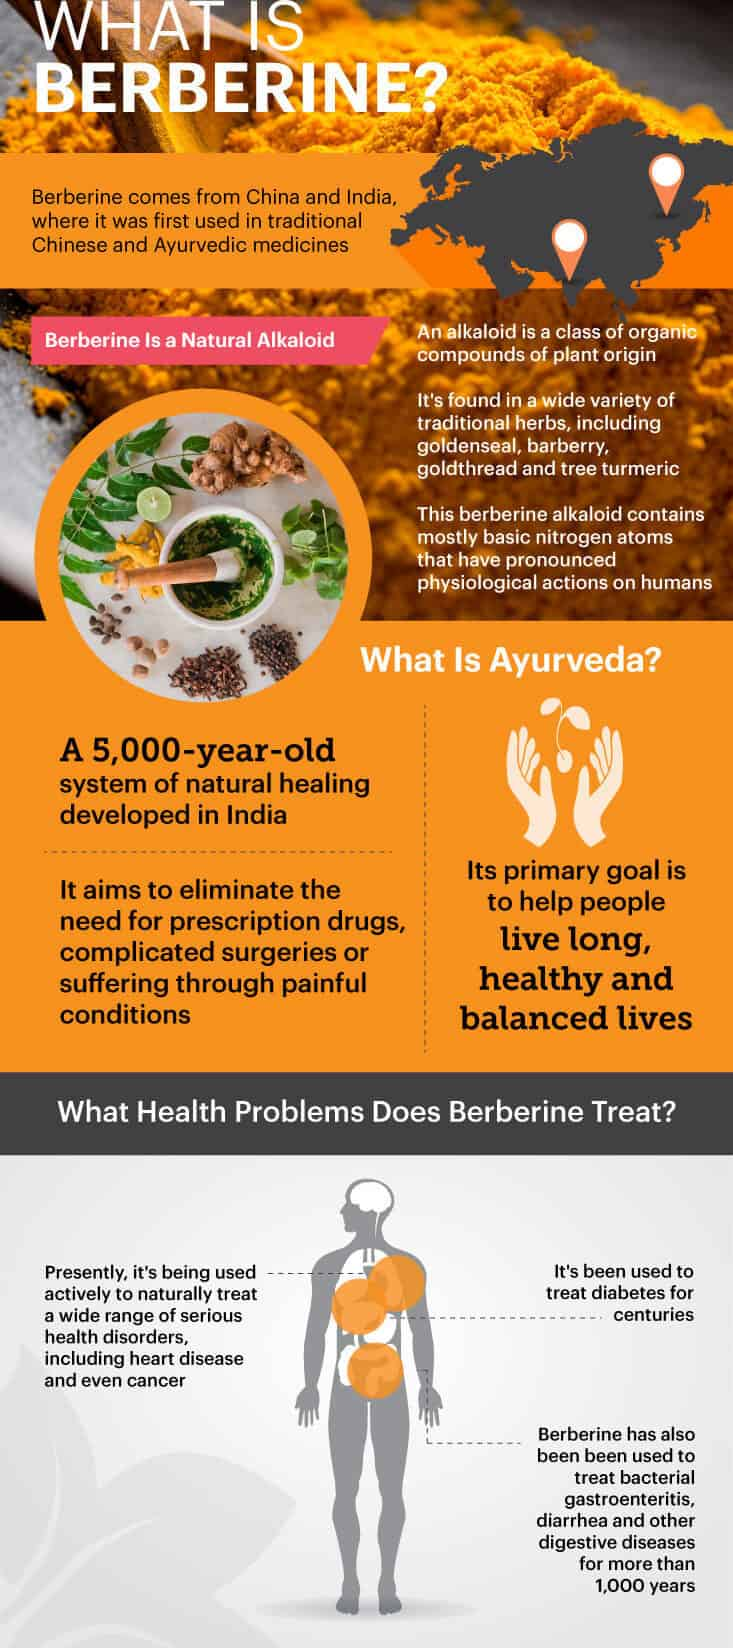 What is berberine?